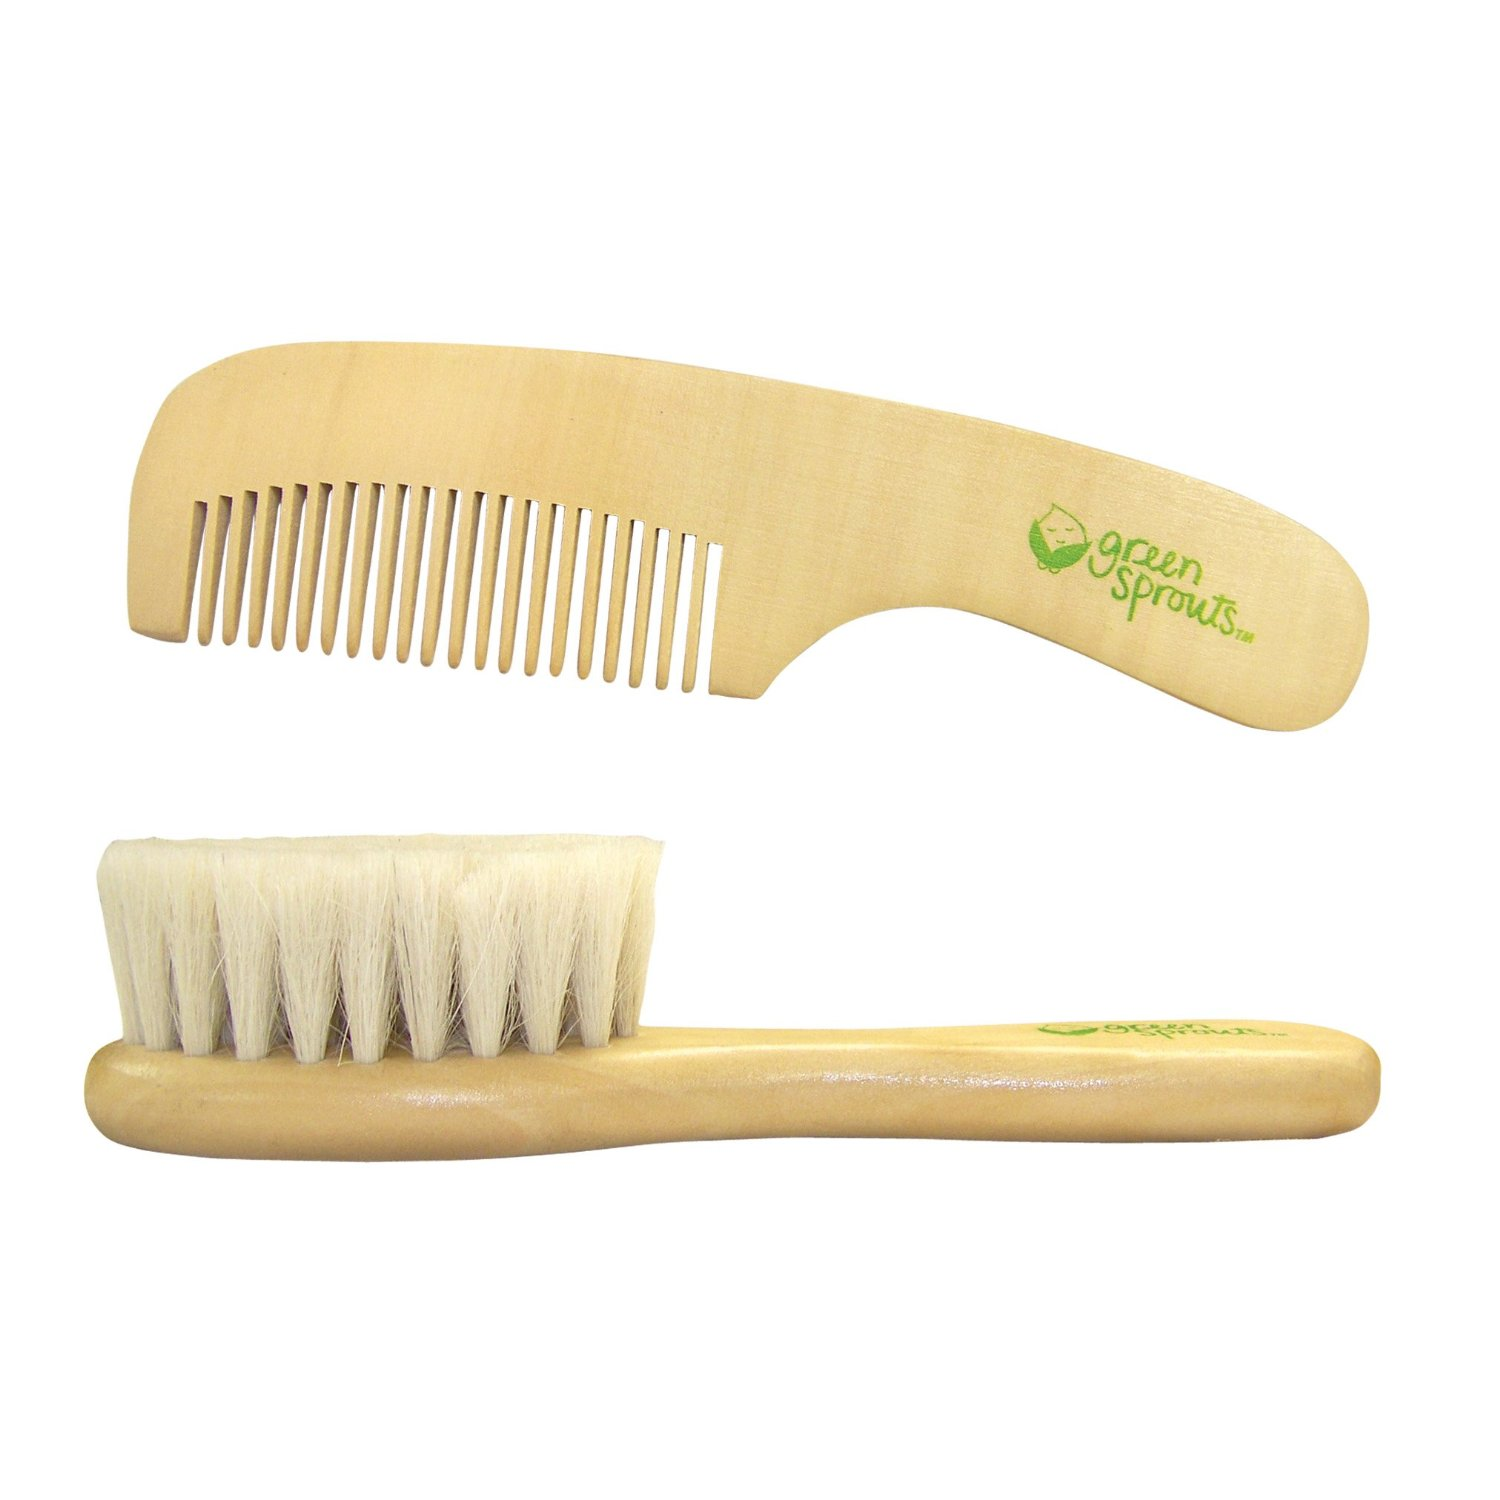 Green Spouts Wooden Brush and Comb set    $9.95 ea    Wants 2  (1) purchased